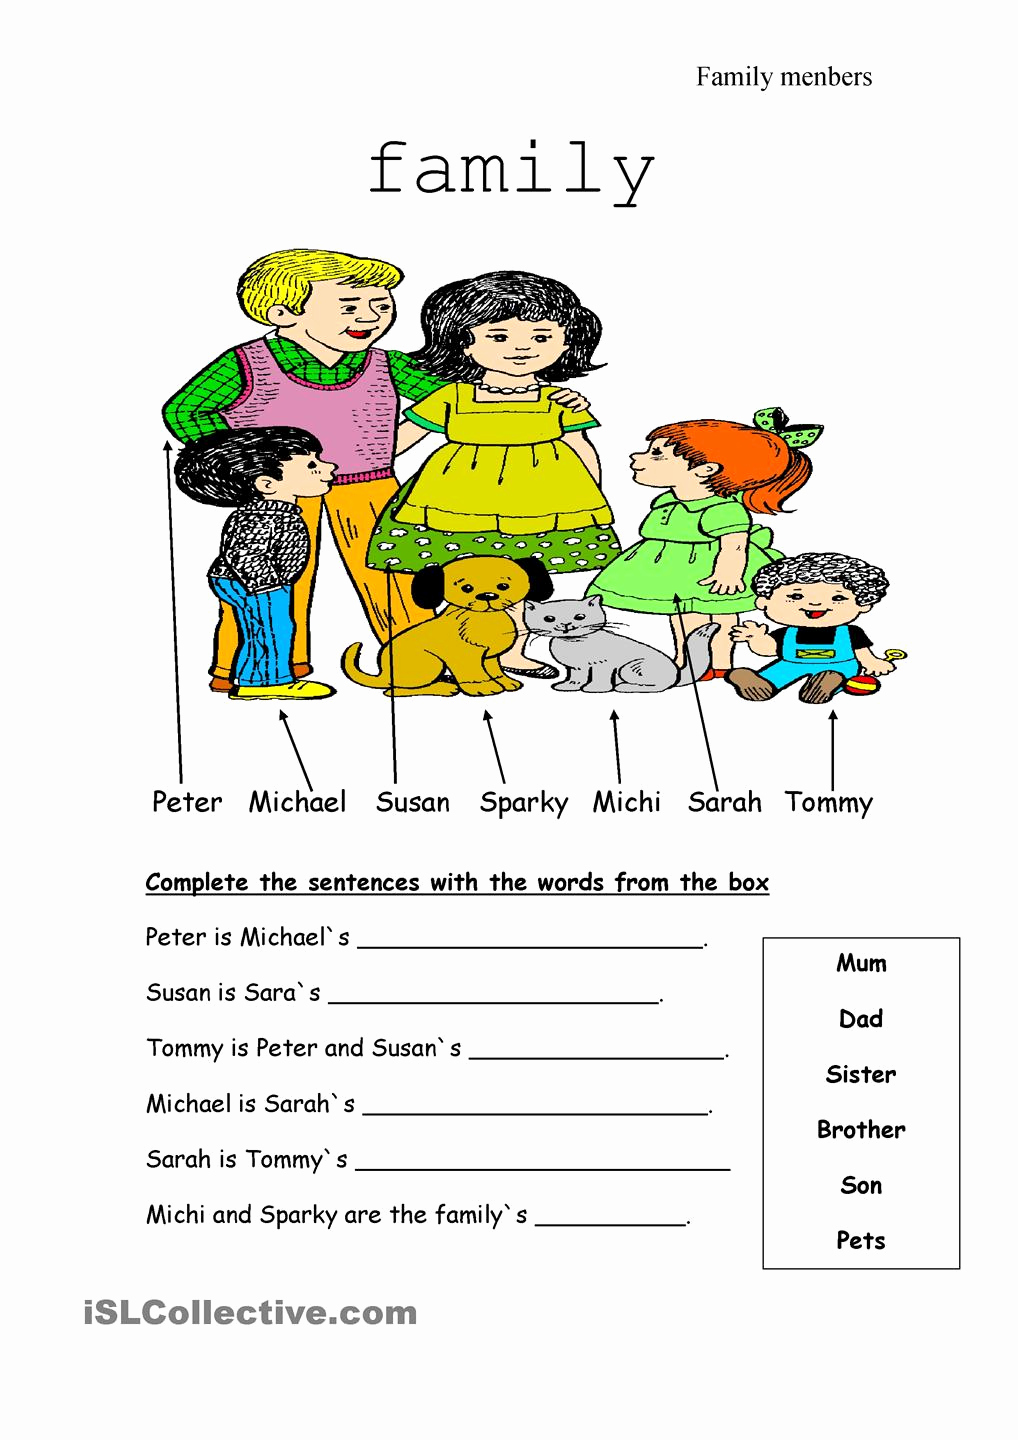 Family Tree Worksheets for Kids Beautiful Family Tree Worksheets Elementary